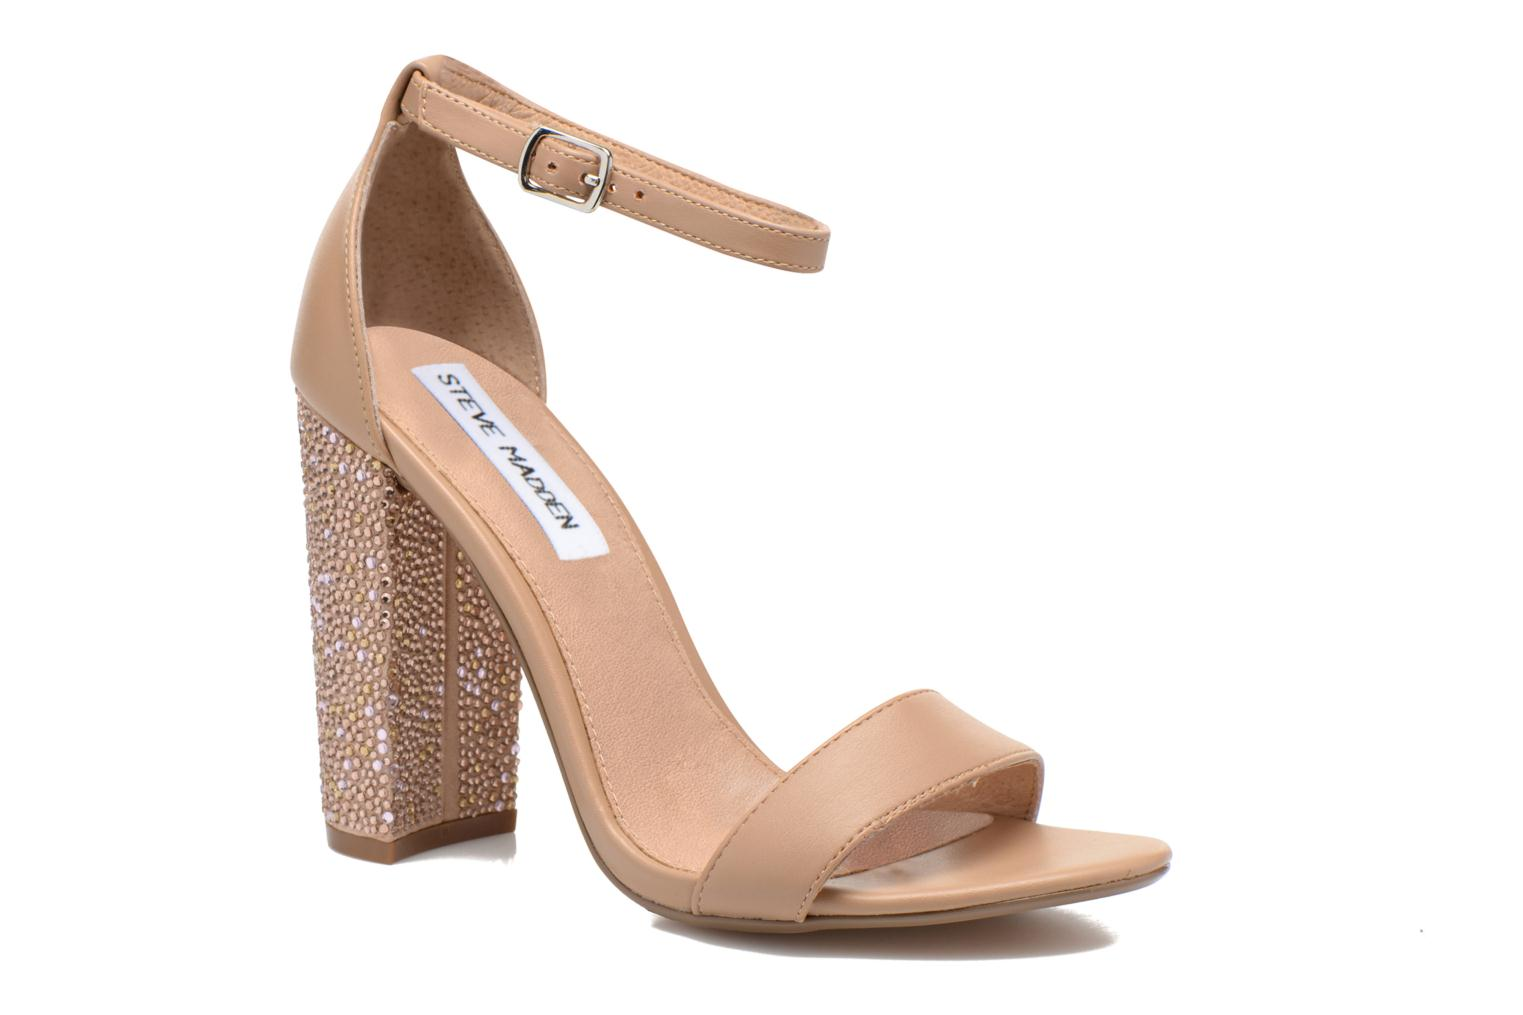 CARRSON Blush Leather Rhinestone